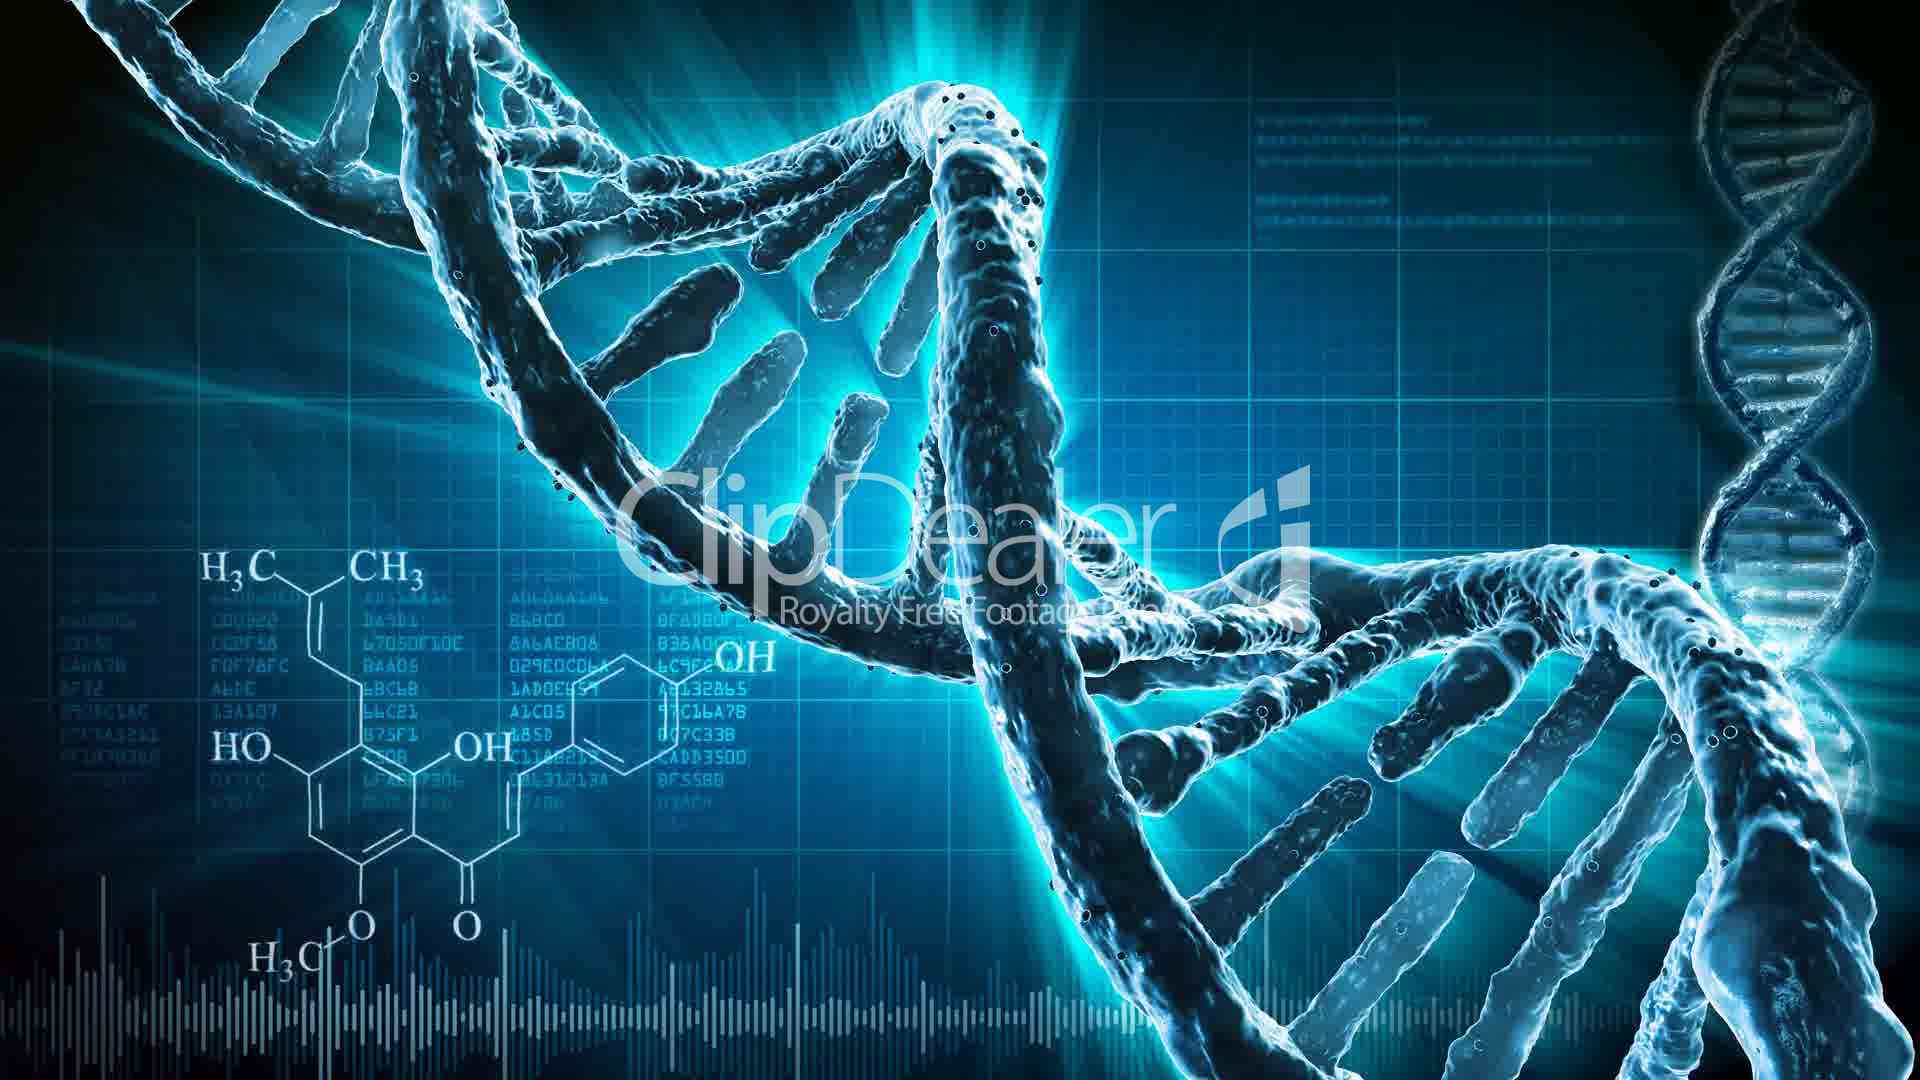 Dna Wallpaper Hd Design Ideas Dna Wallpaper Android Large Hd 1920x1080